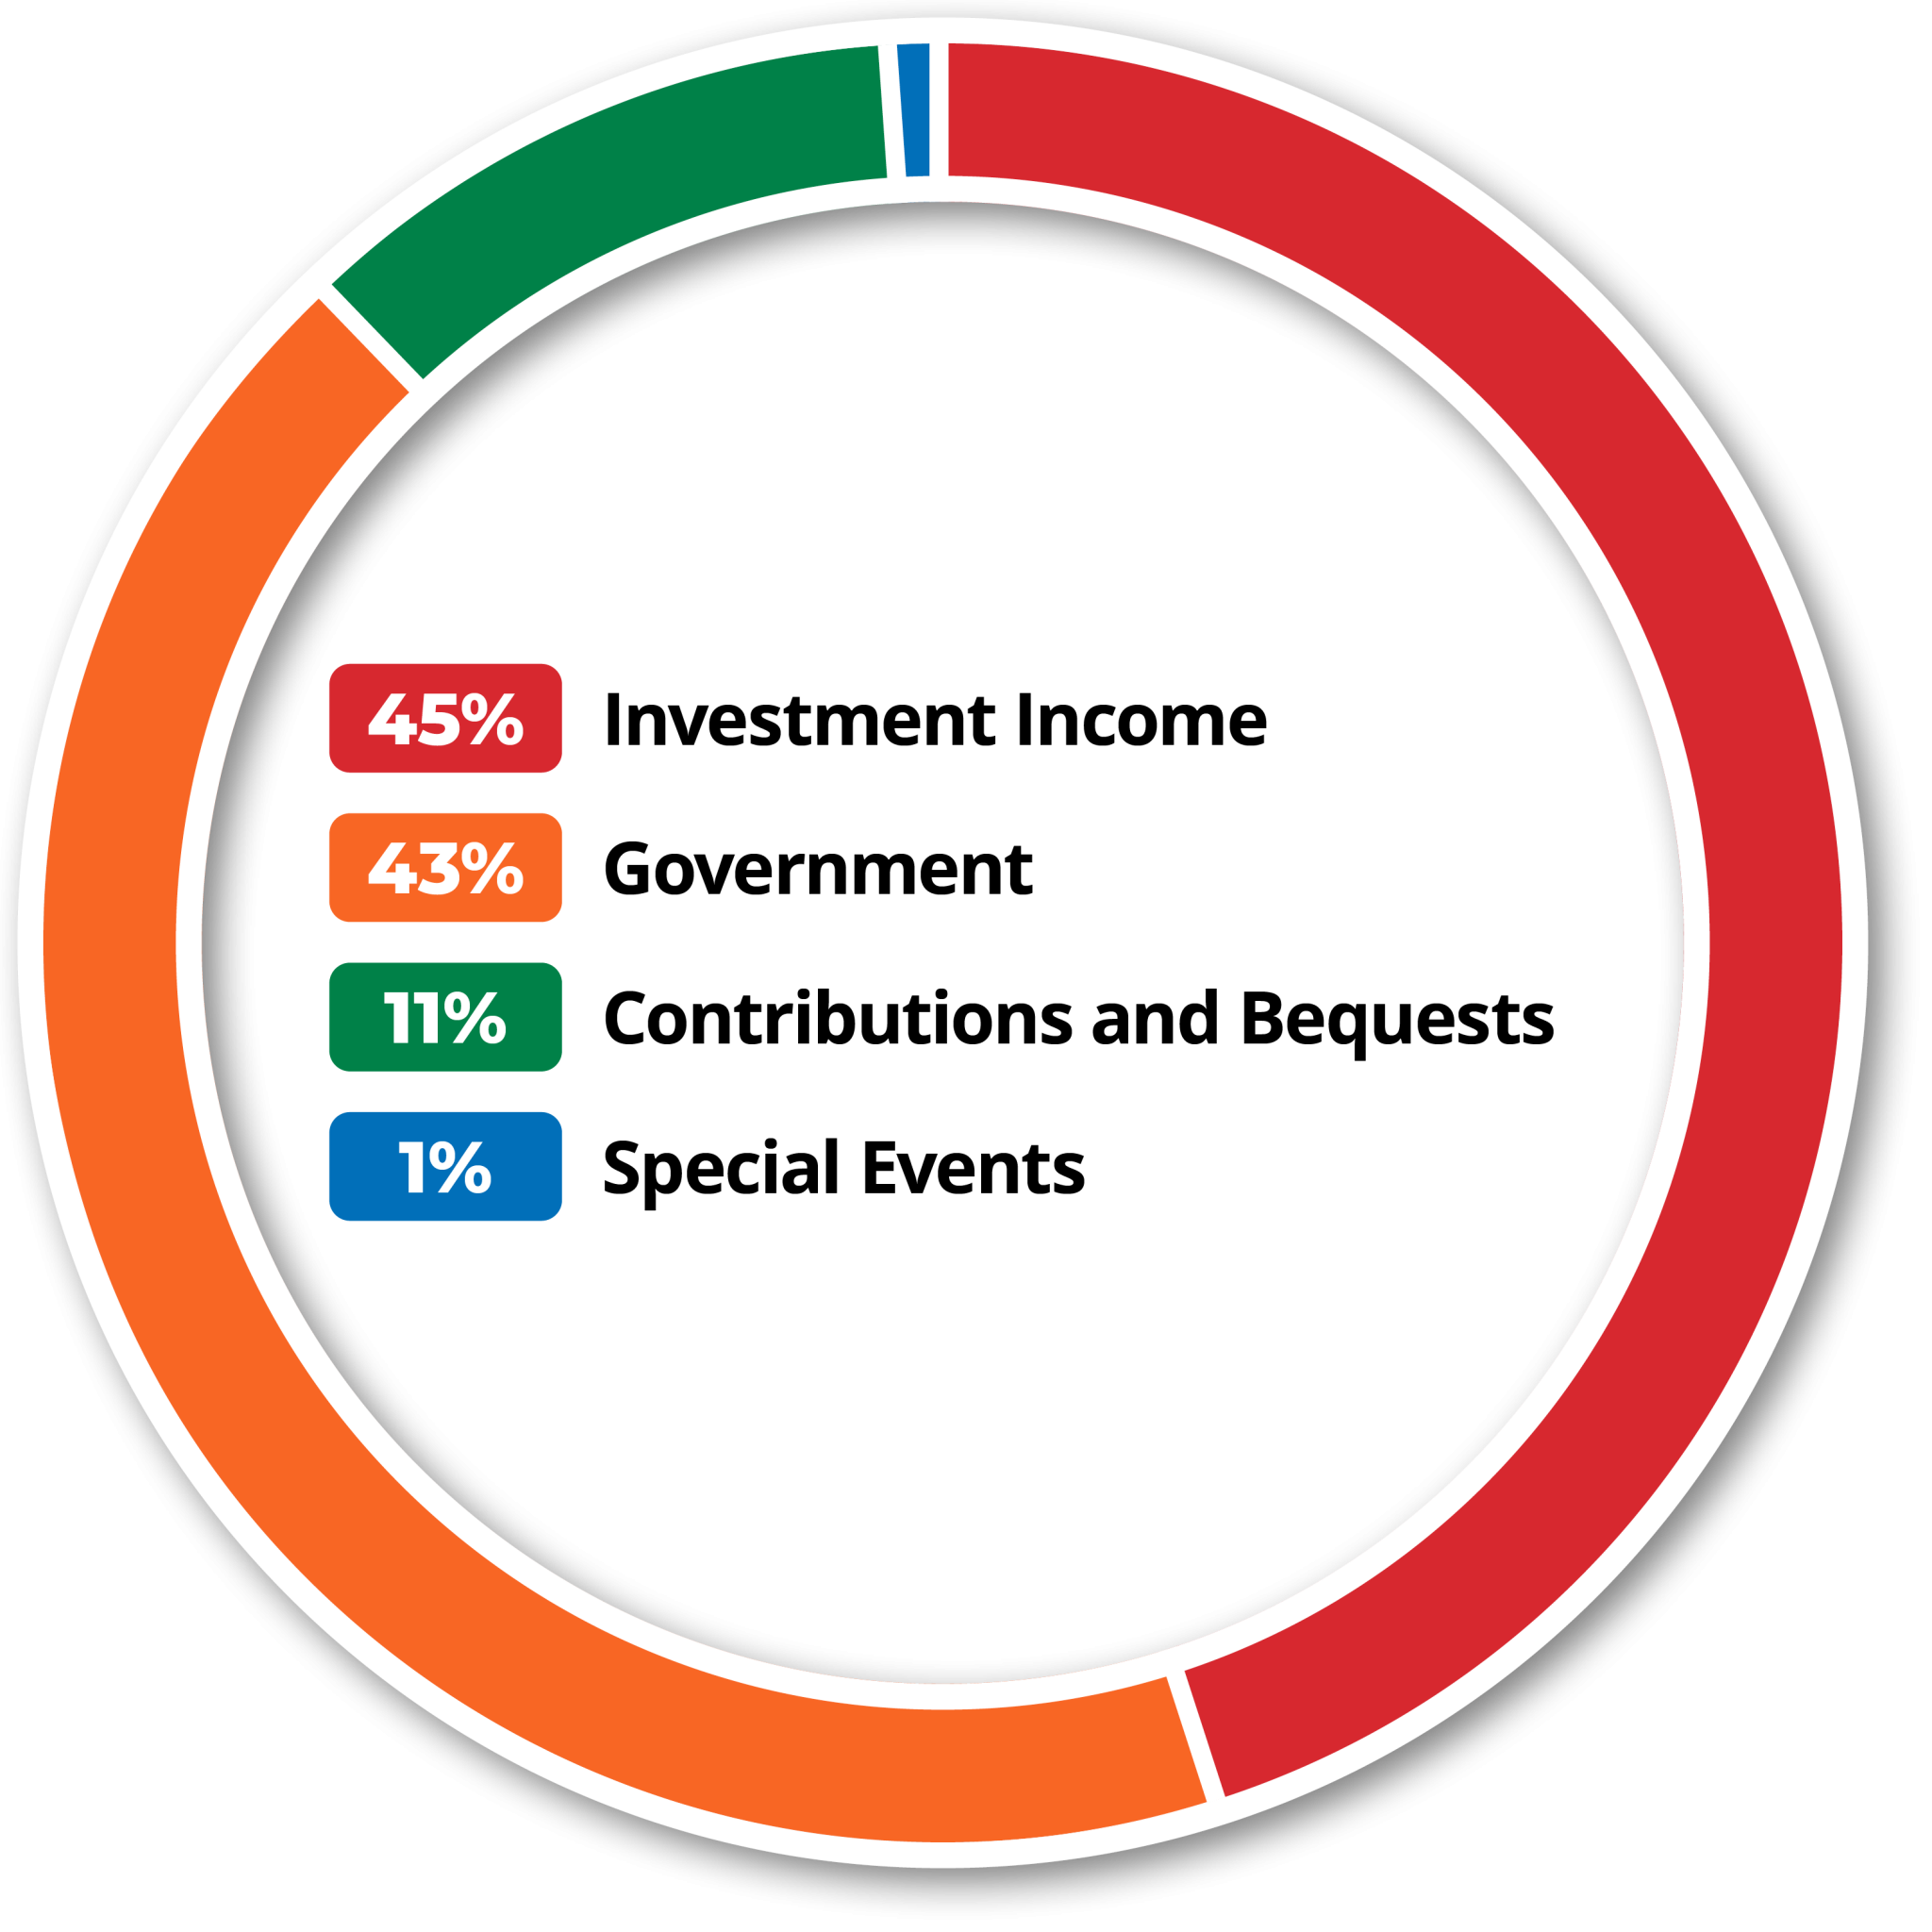 Donut chart: VISIONS Revenue Sources. Investment Income: 45%. Government: 43%. Contributions and Bequests: 11%. Special events: 1%.